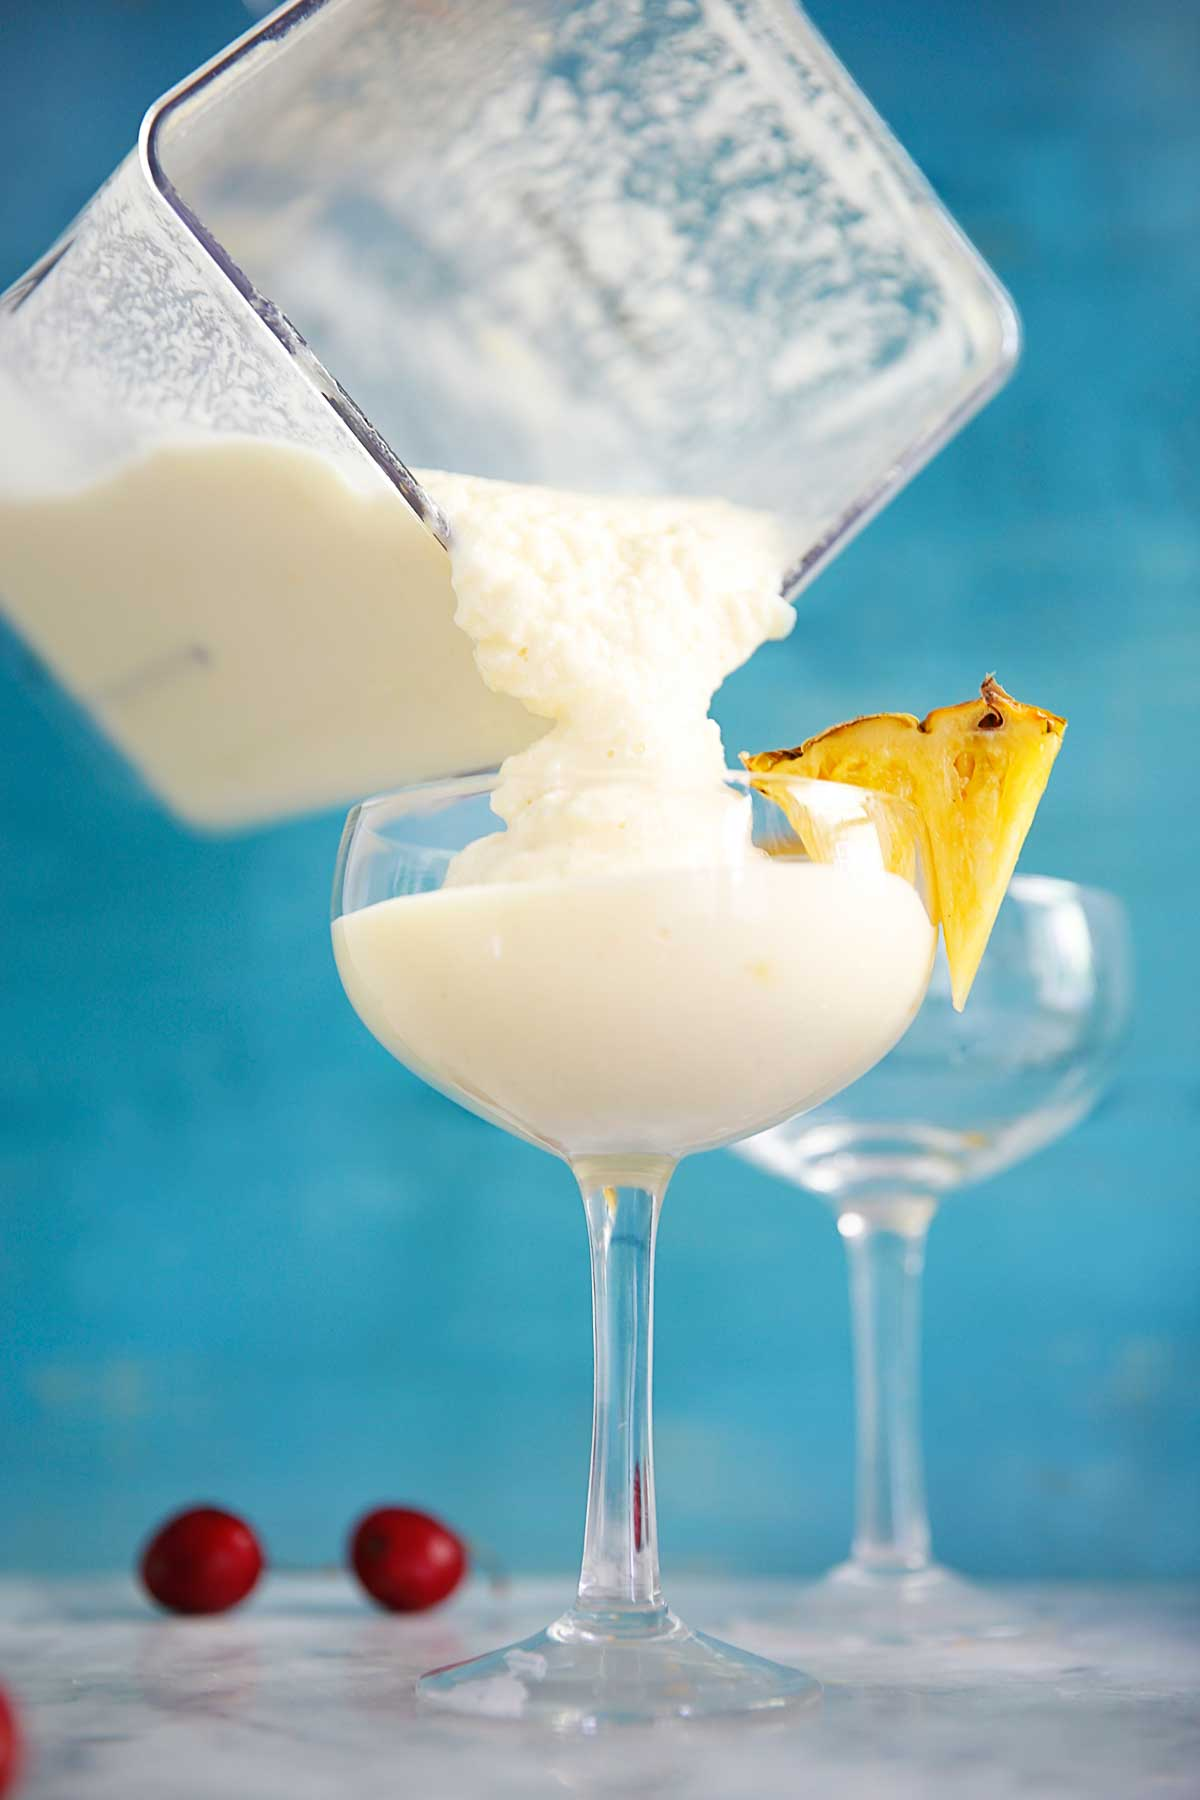 4 Ingredient Lightened Up Pina Colada | Lexi's Clean Kitchen